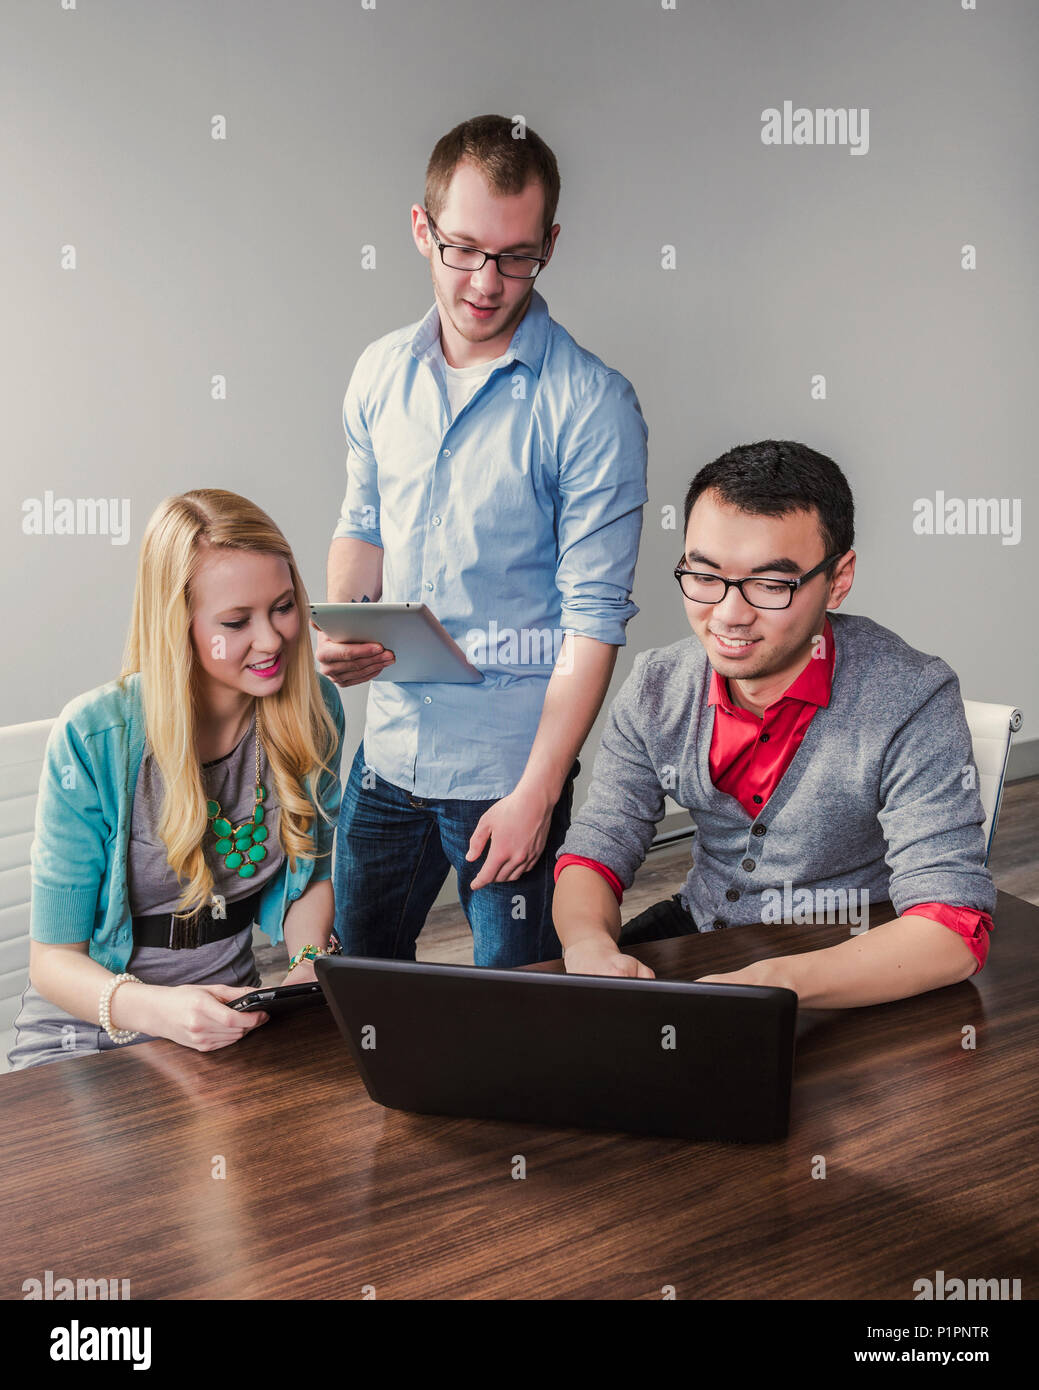 Young millennial business professionals working together in a conference room in a high tech modern business; Sherwood Park, Alberta, Canada - Stock Image